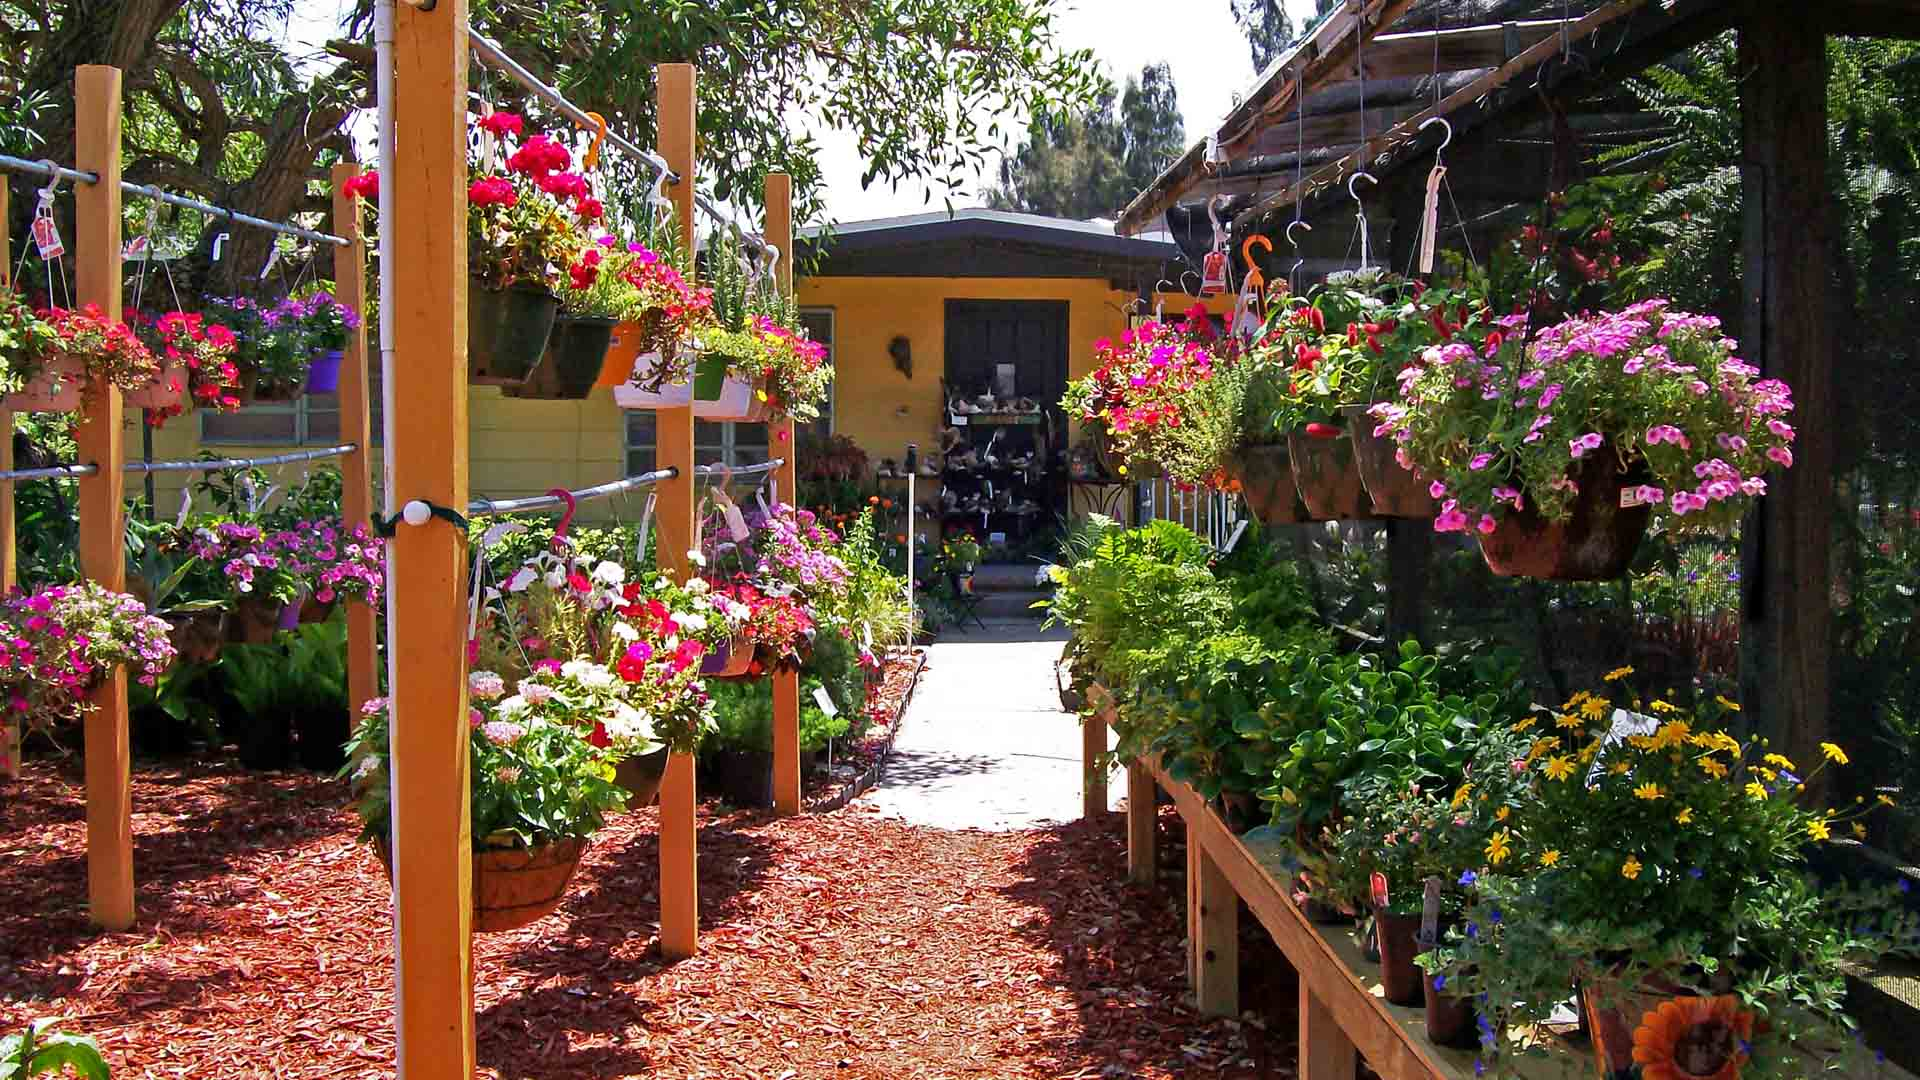 Background of hanging flower baskets at Sunman's Nursery in Fort Myers, FL.